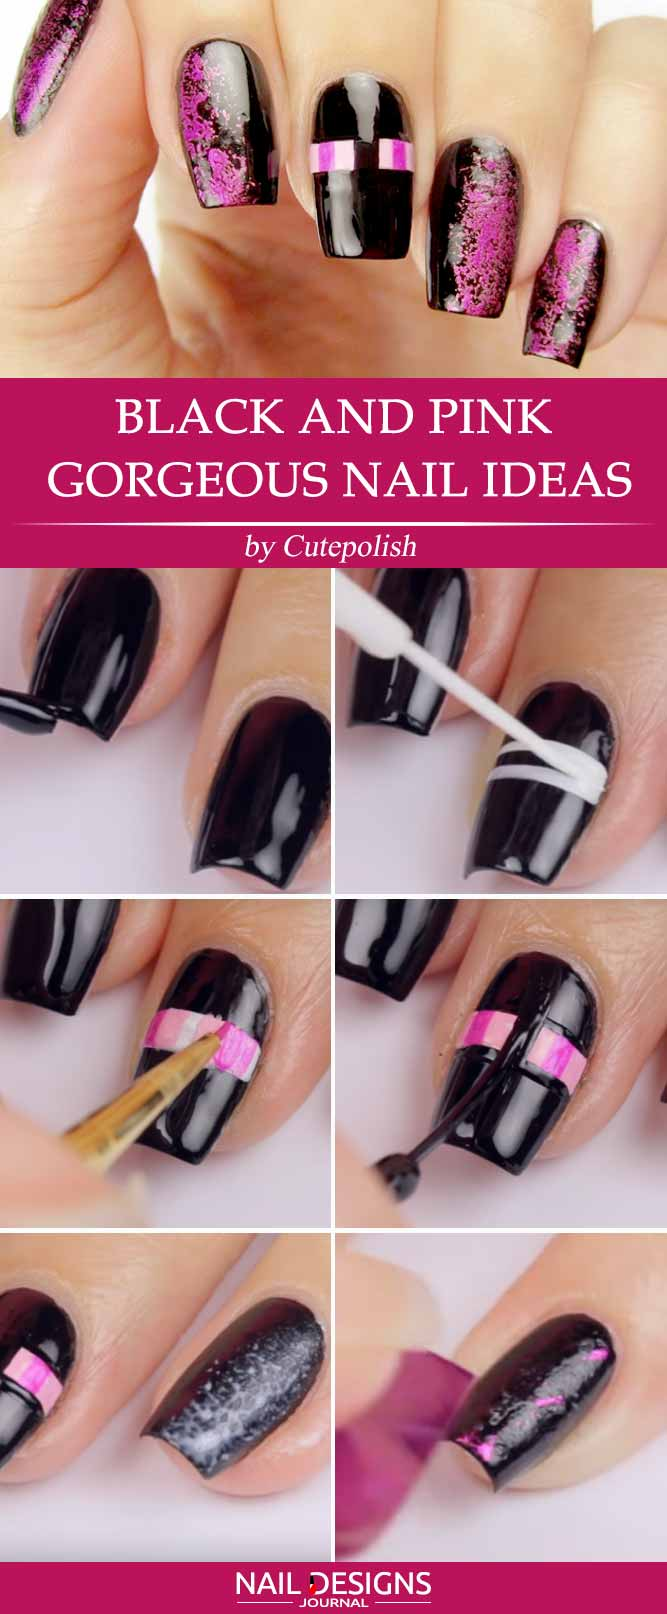 Black and Pink Gorgeous Nail Ideas